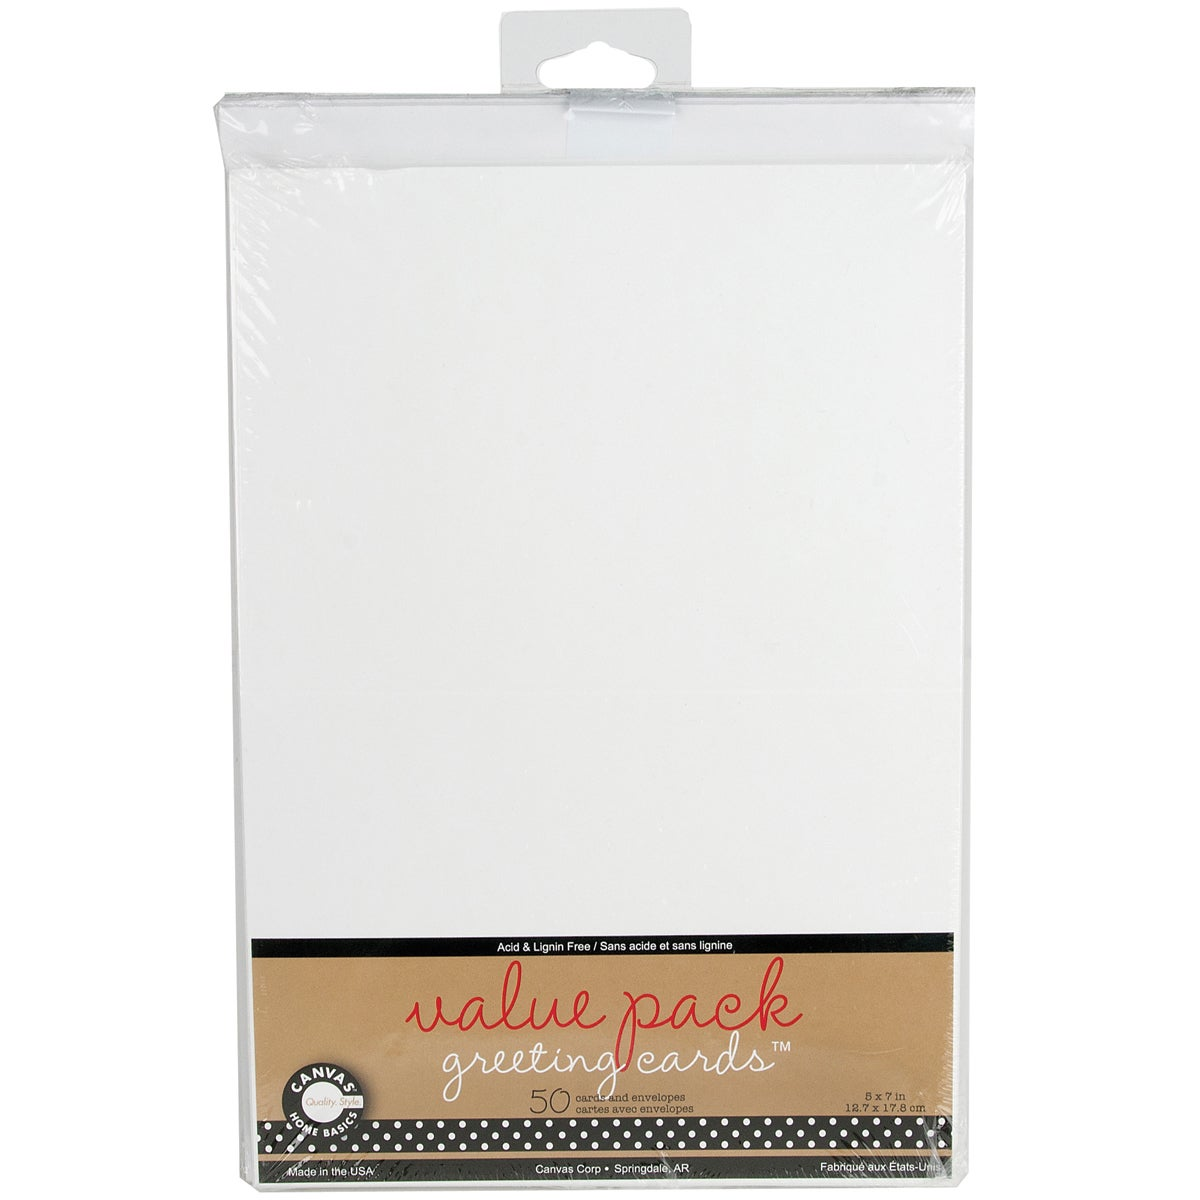 Value Pack Cards Envelopes 5inx7in 50pkg White Free Shipping On